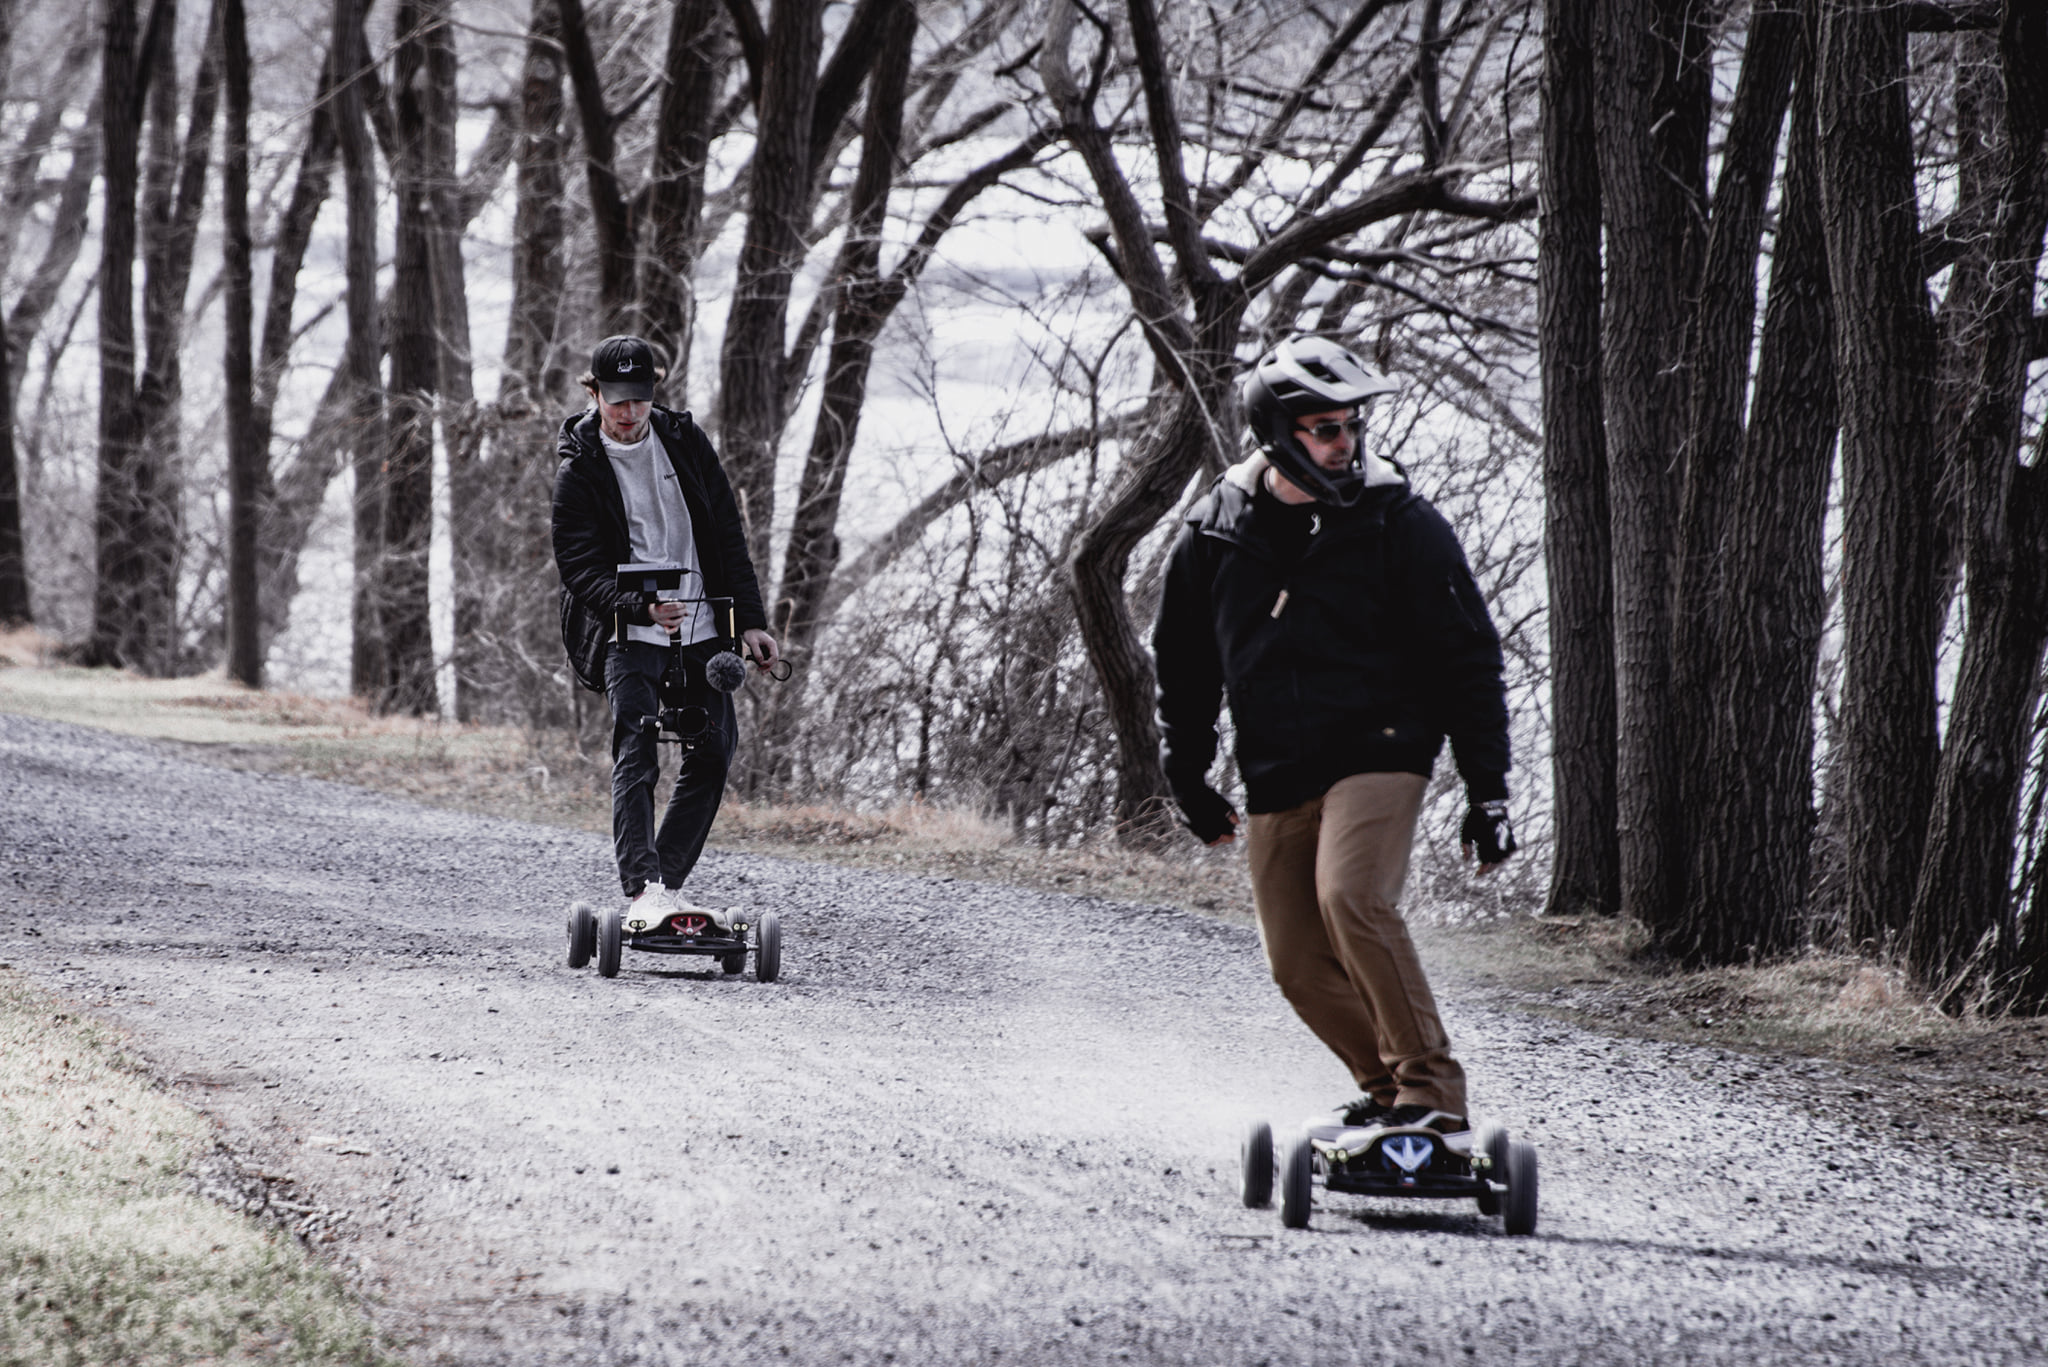 What are the advantages of an electric longboard?